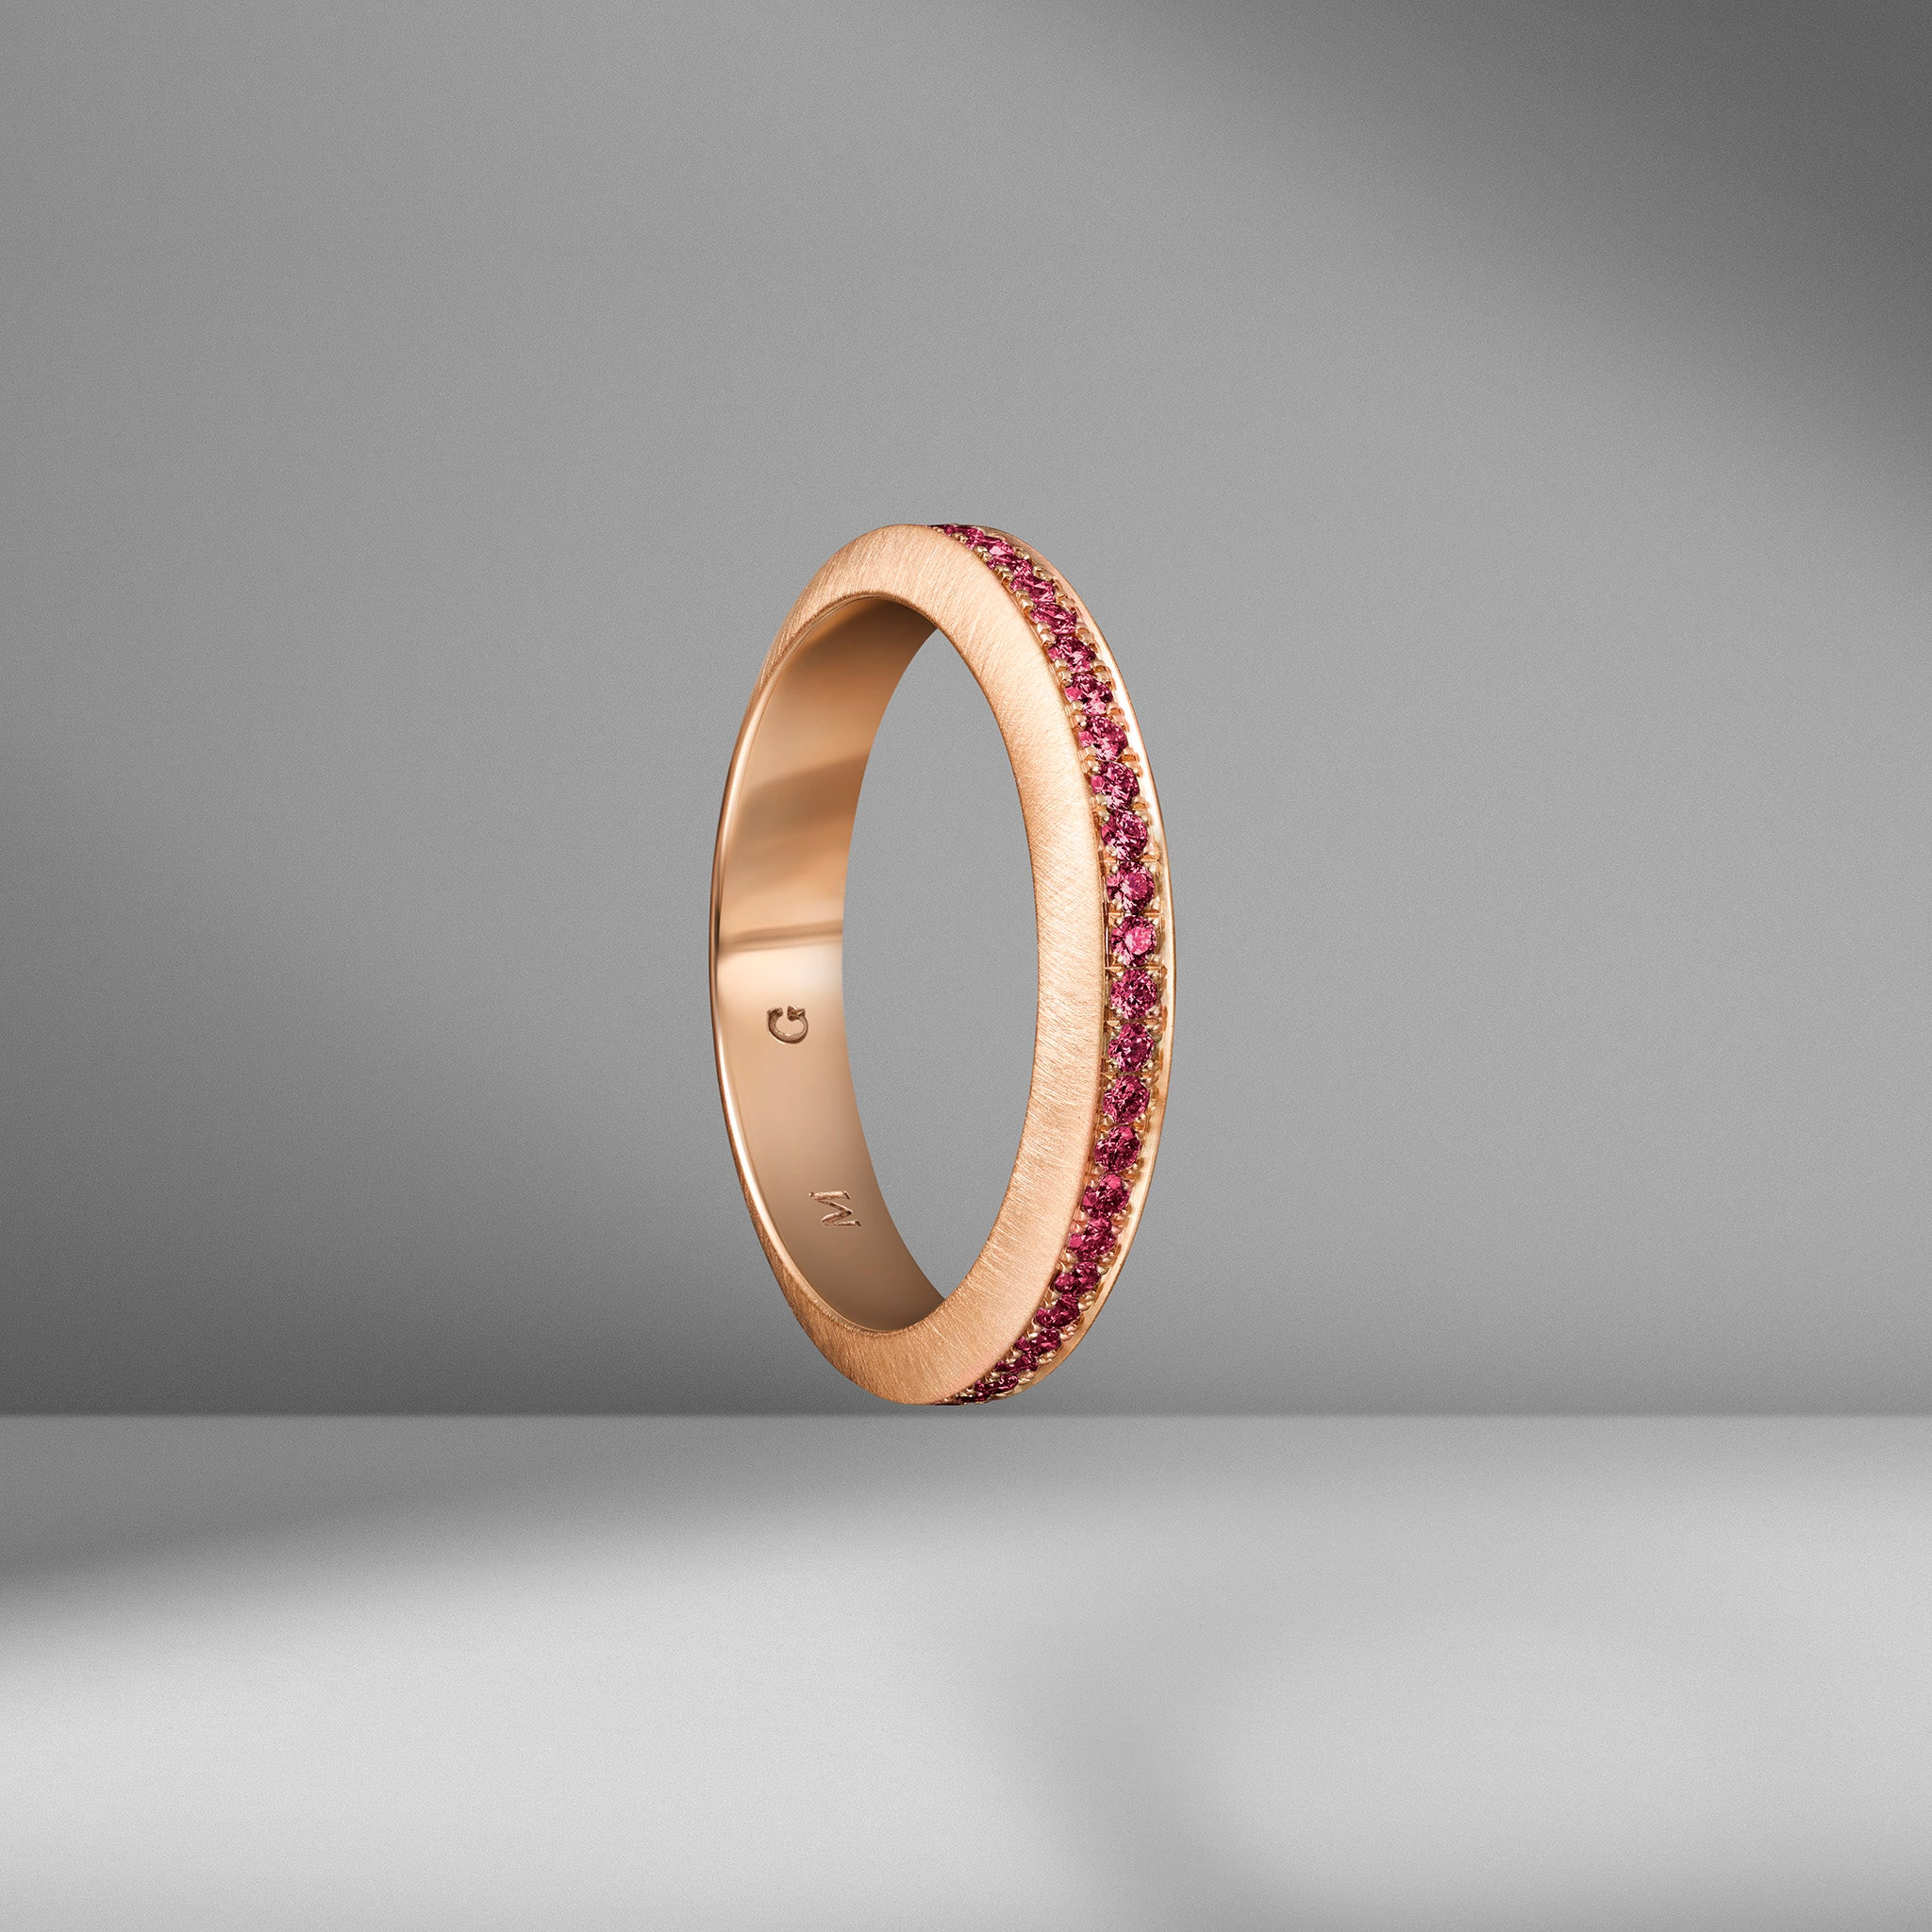 Beveled Edge Ruby Ring